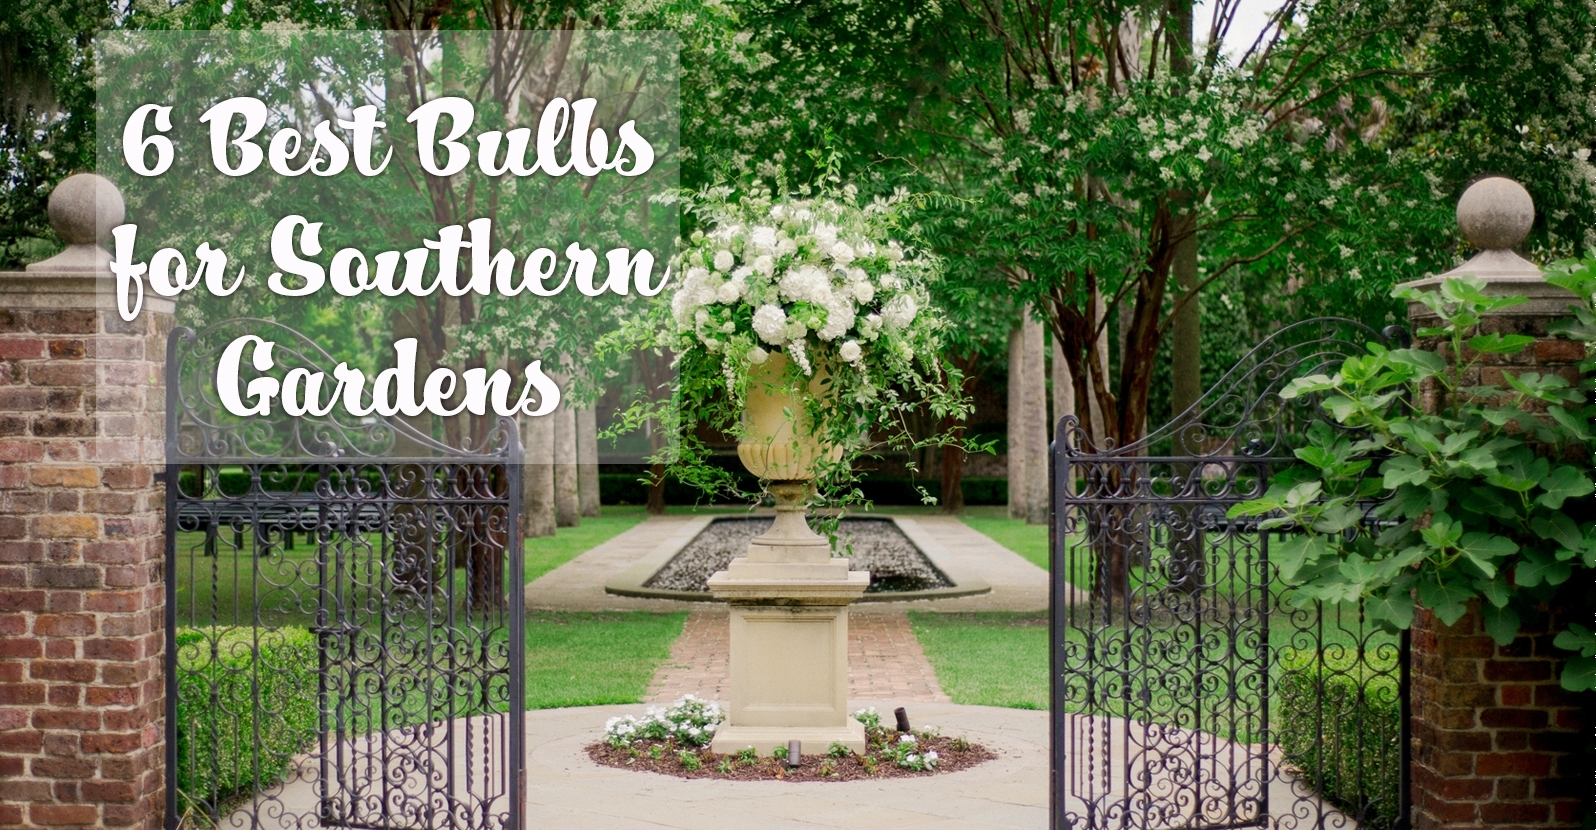 6 Best Bulbs For Southern Gardens (Zones 7 10)